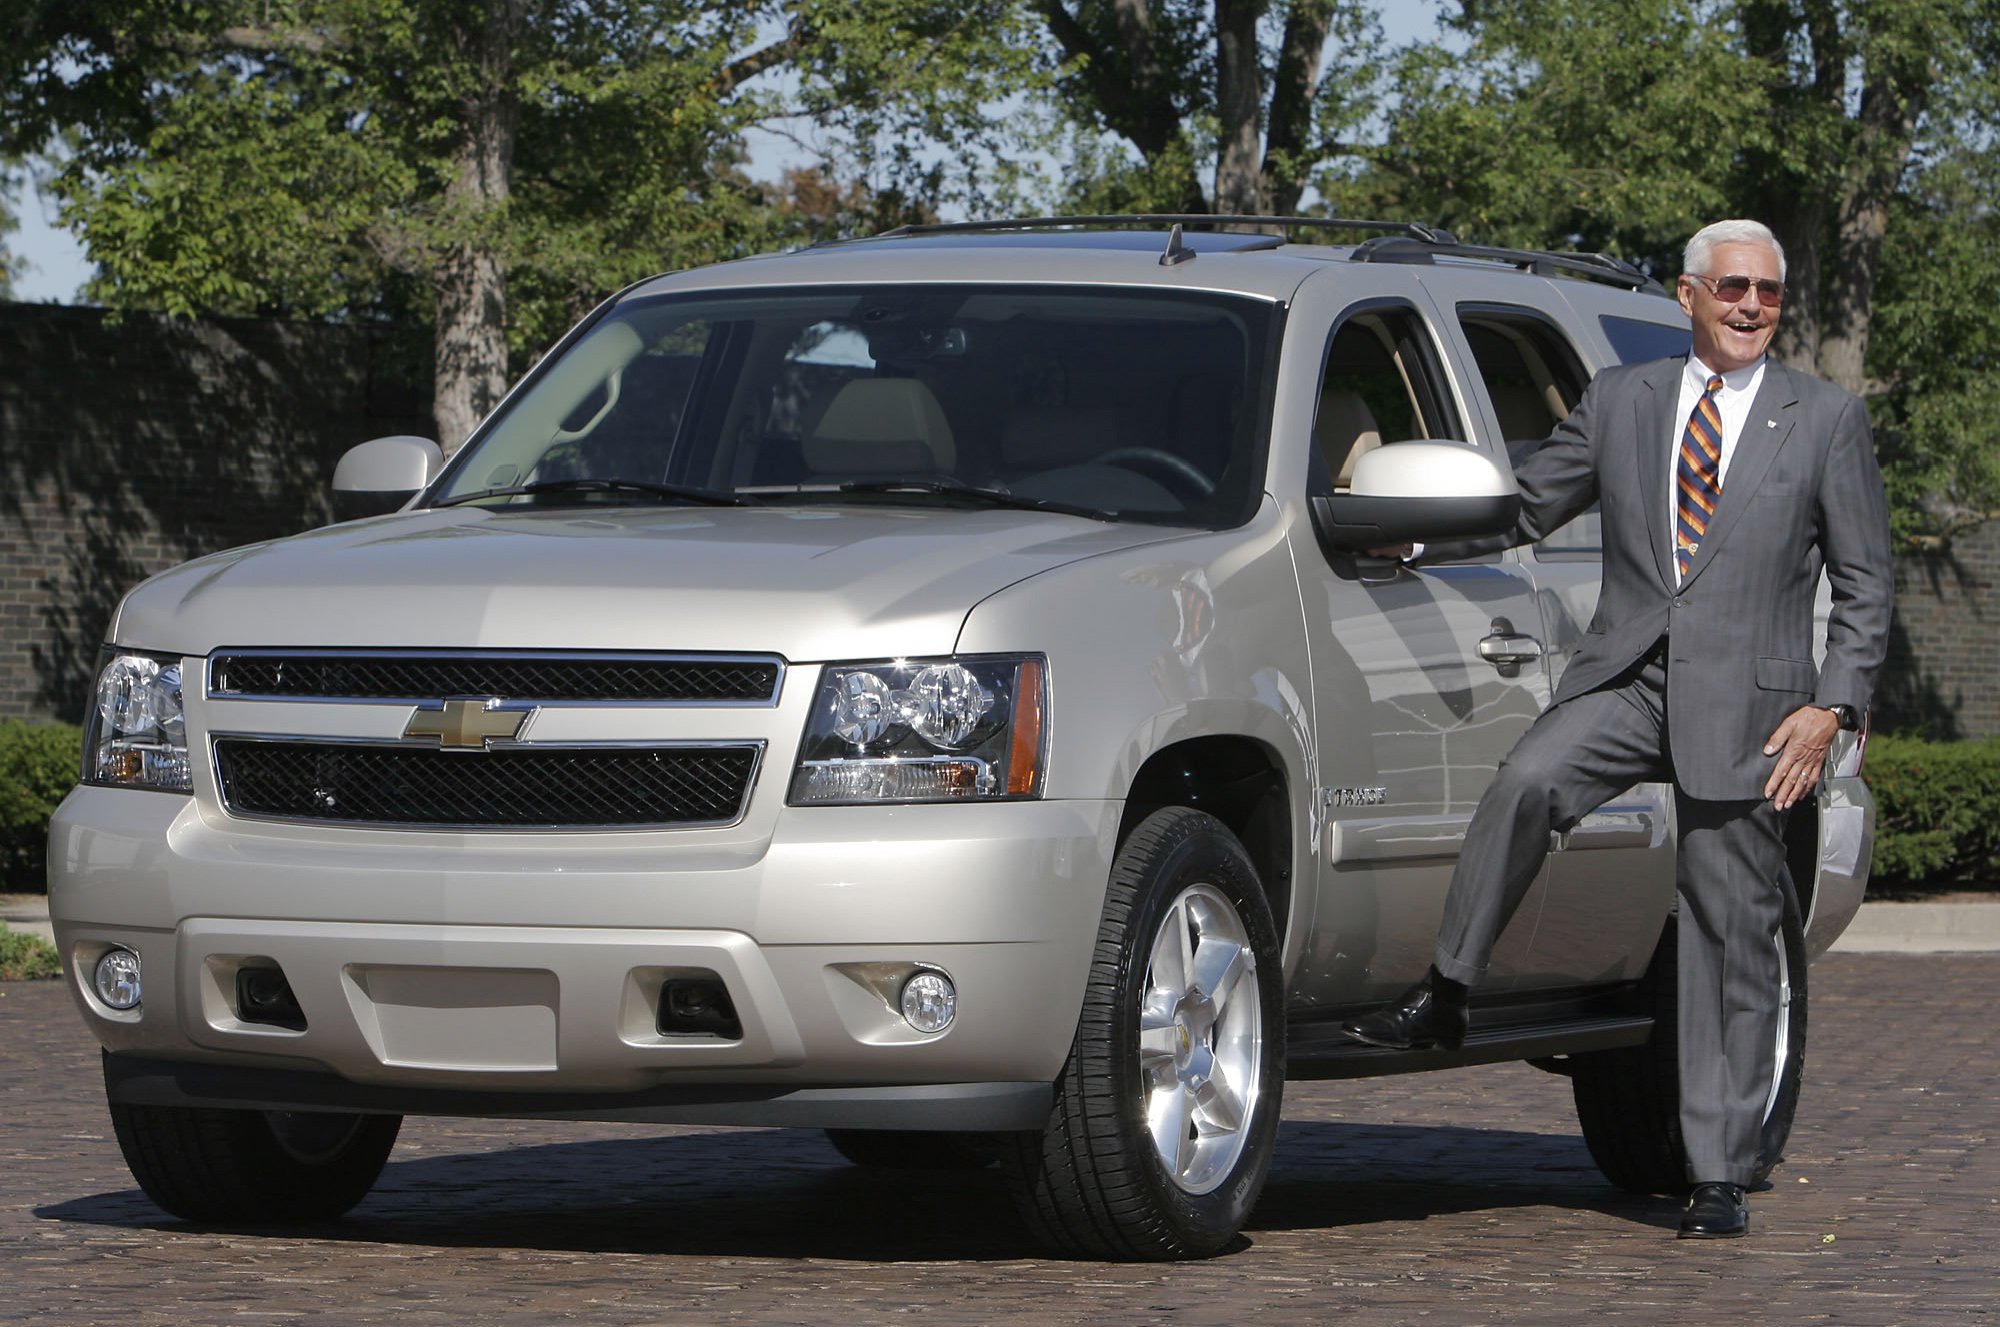 2007 Chevrolet Tahoe-STUD or DUD?